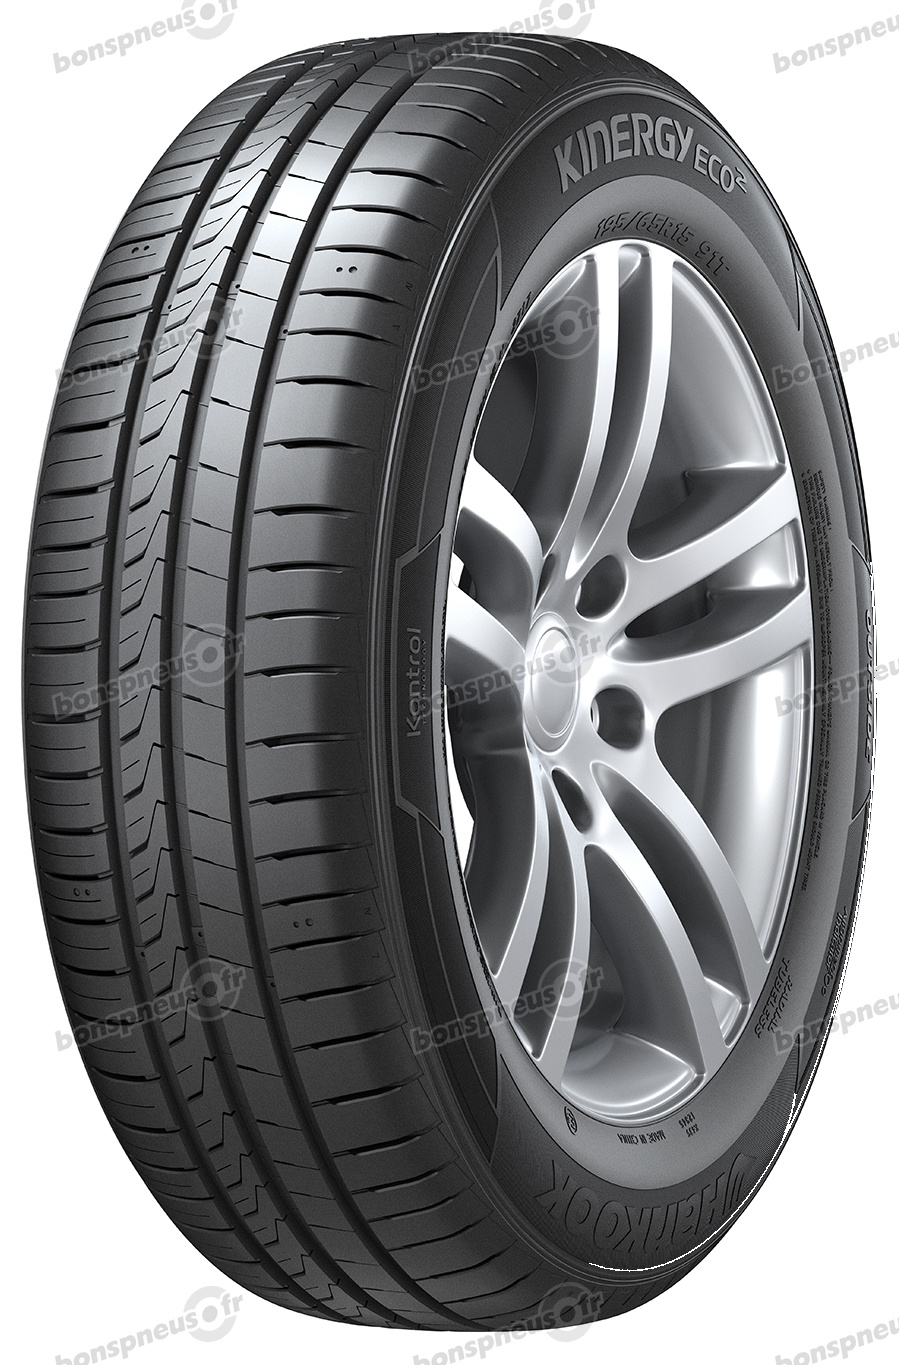 205/55 R16 91H KInERGy ECO 2 K435 HP HMC  KInERGy ECO 2 K435 HP HMC